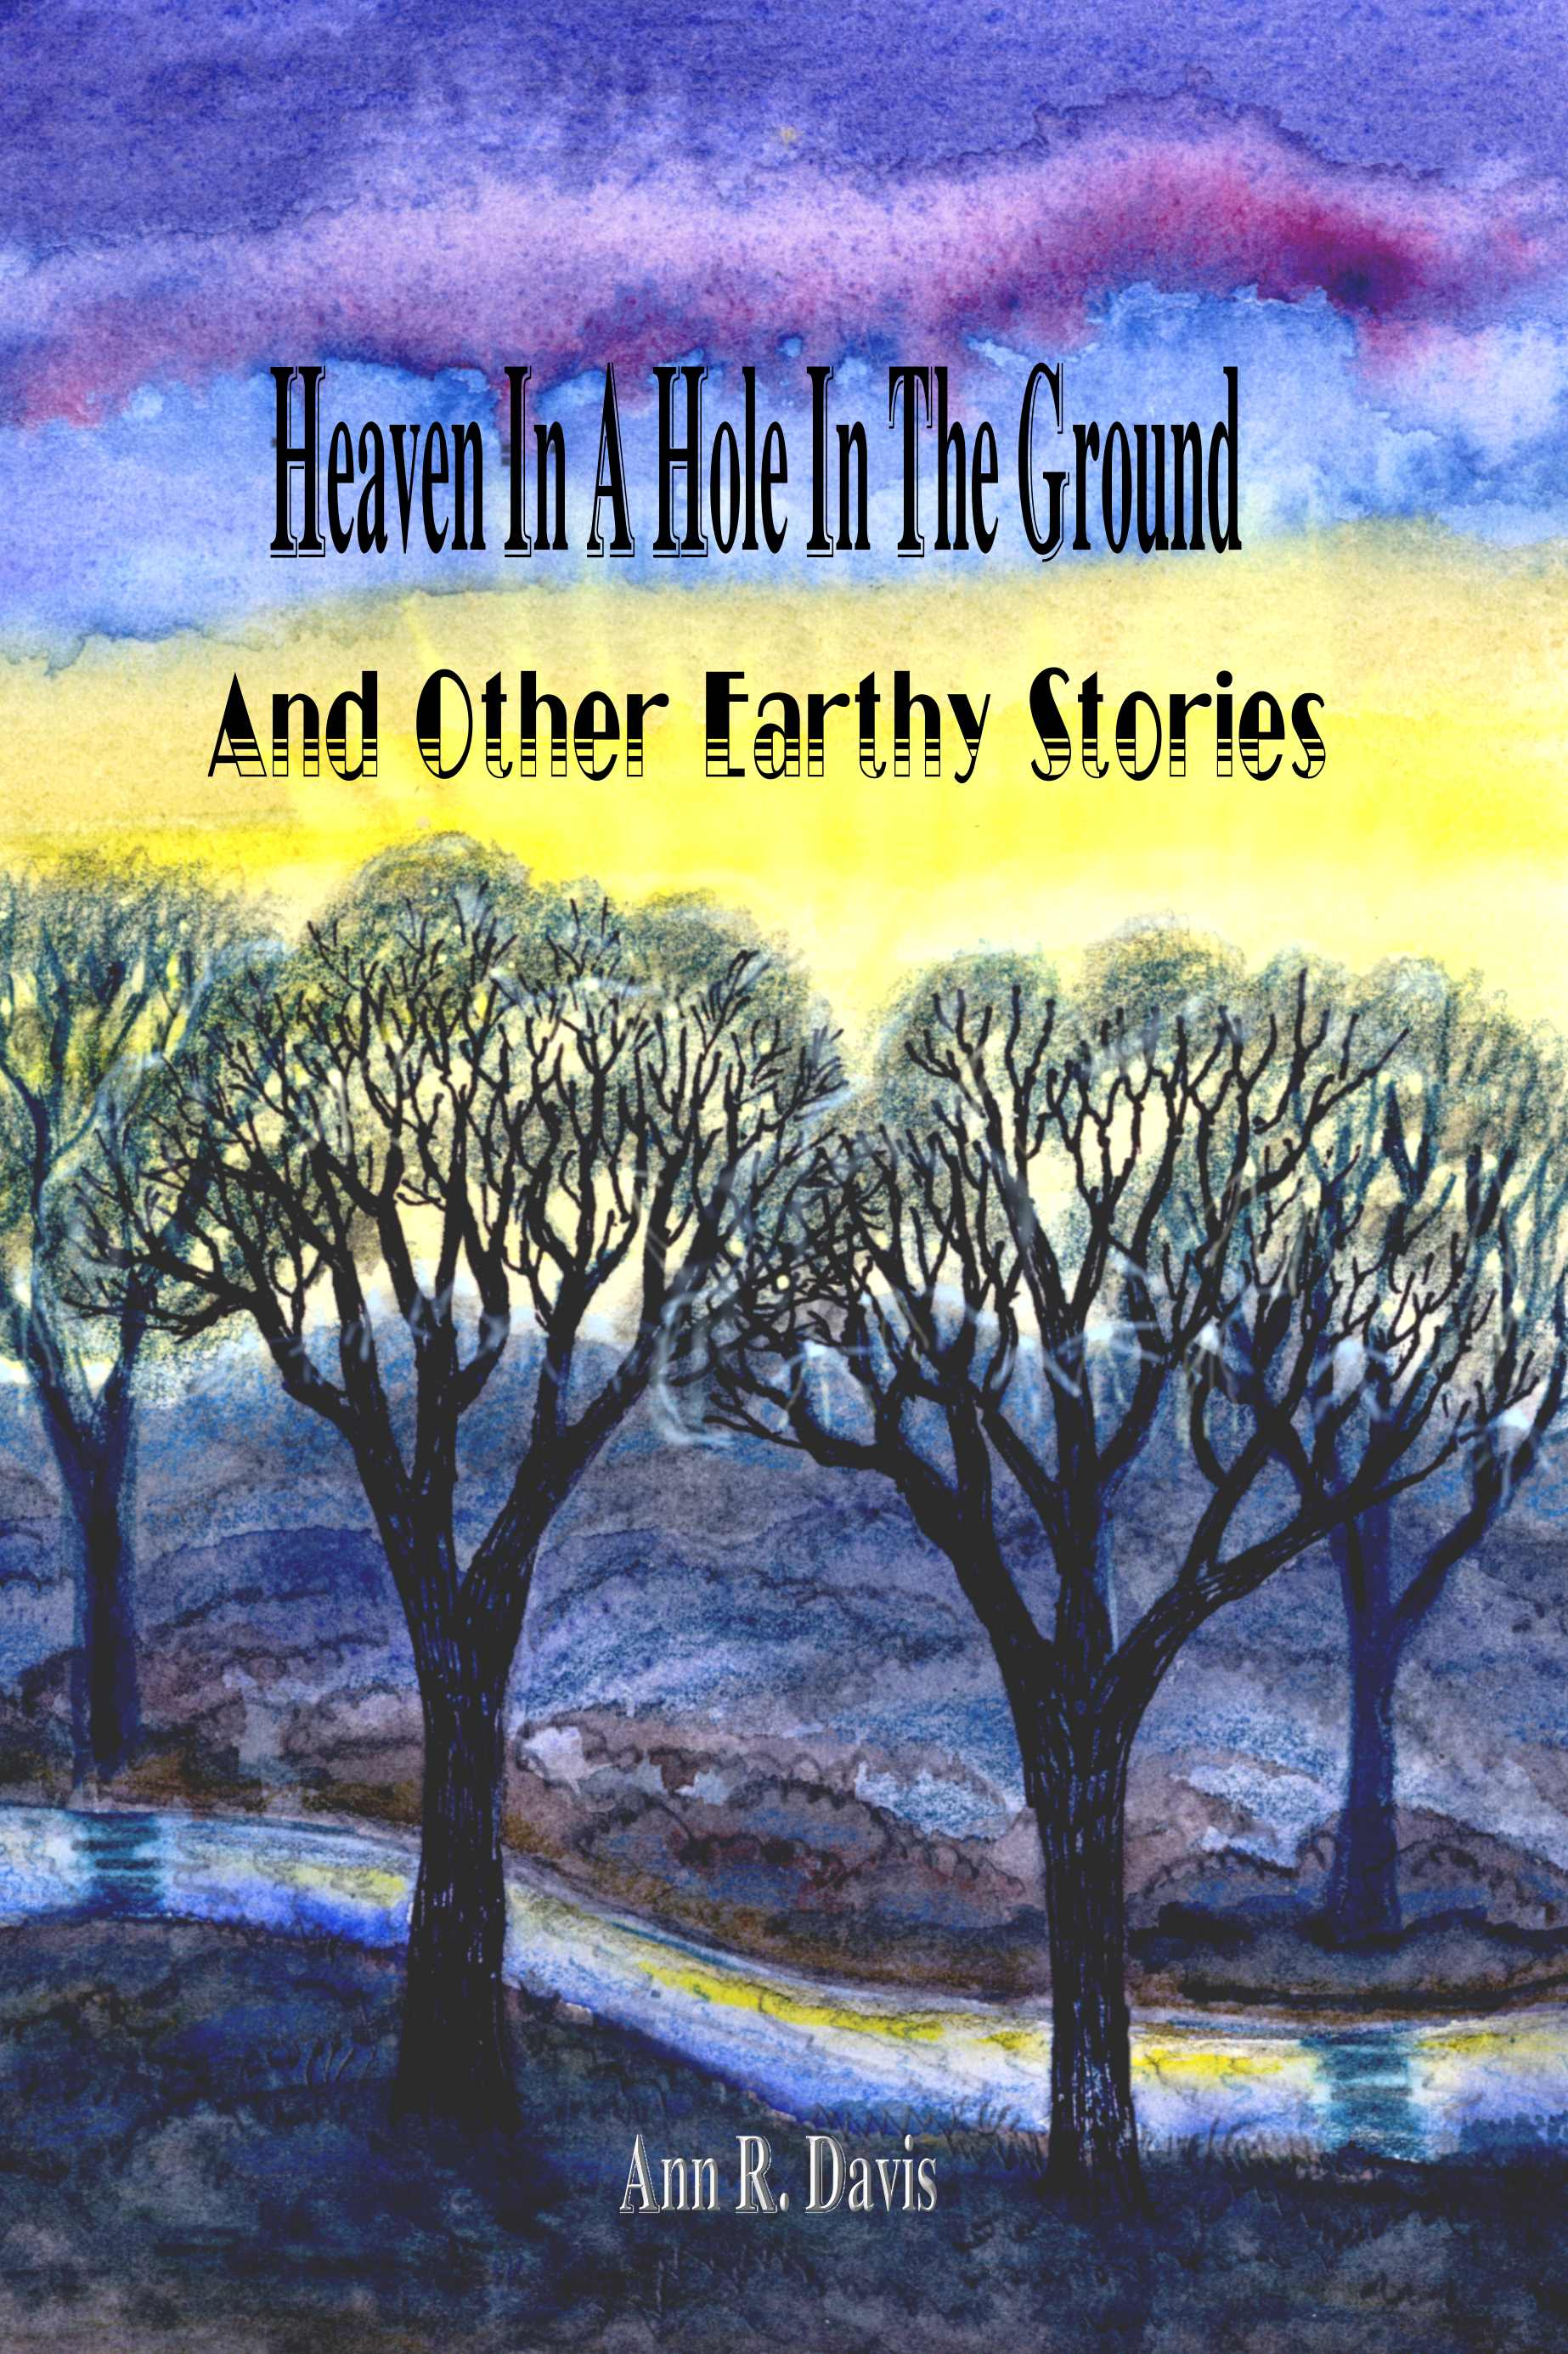 Heaven in a Hole in the Ground and Other Earthy Stories